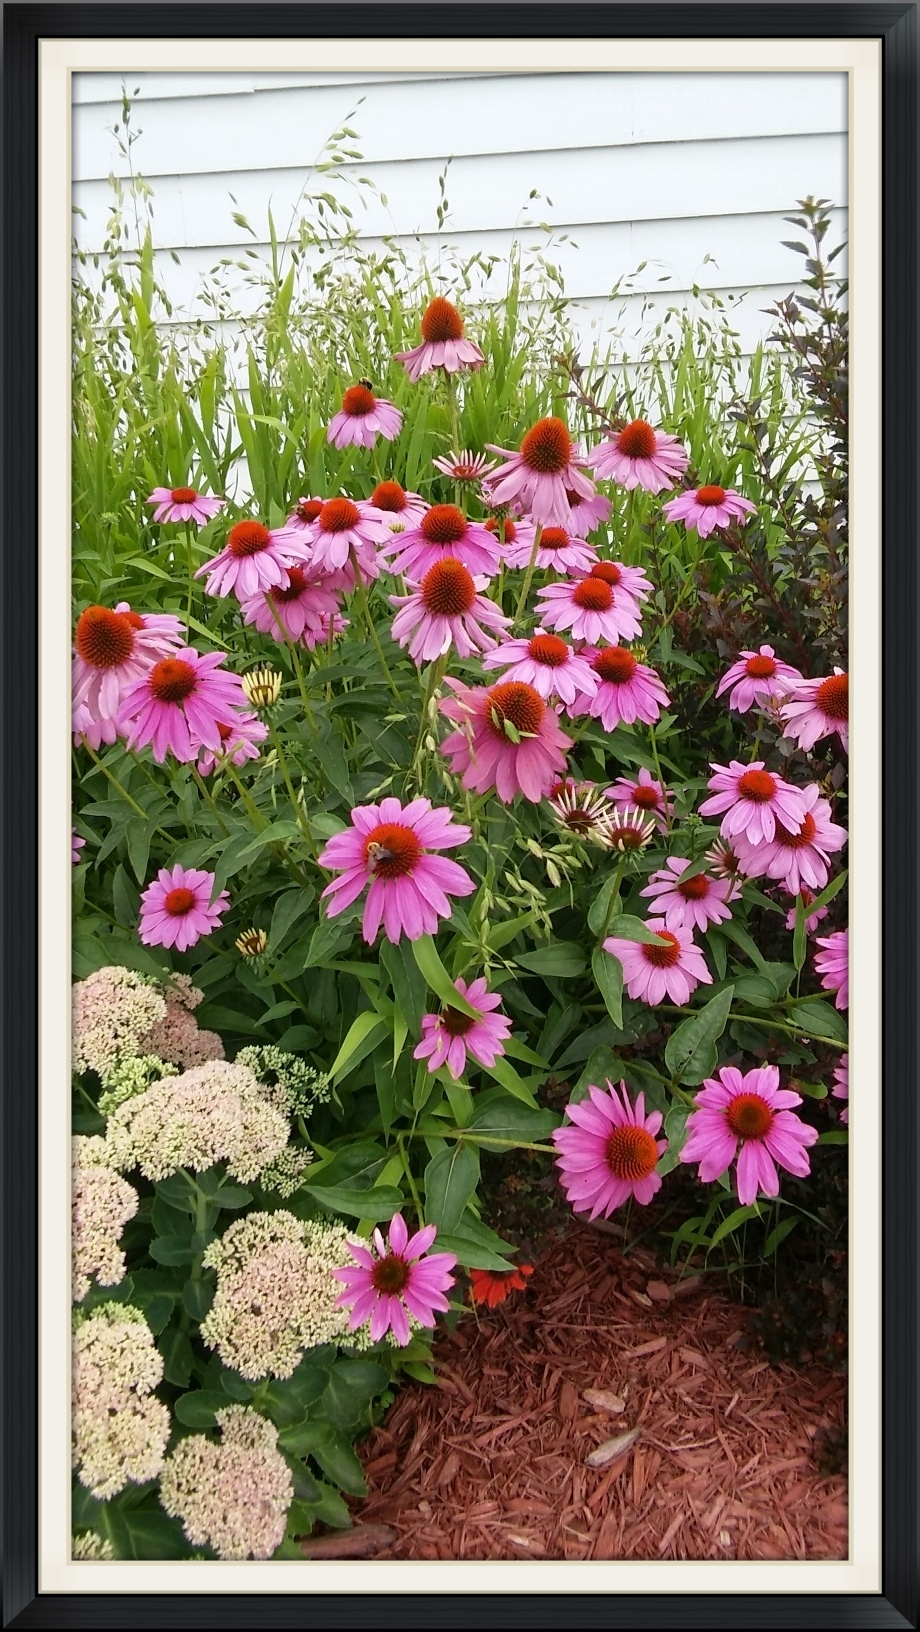 20160707_152115_HDR_resized.jpg